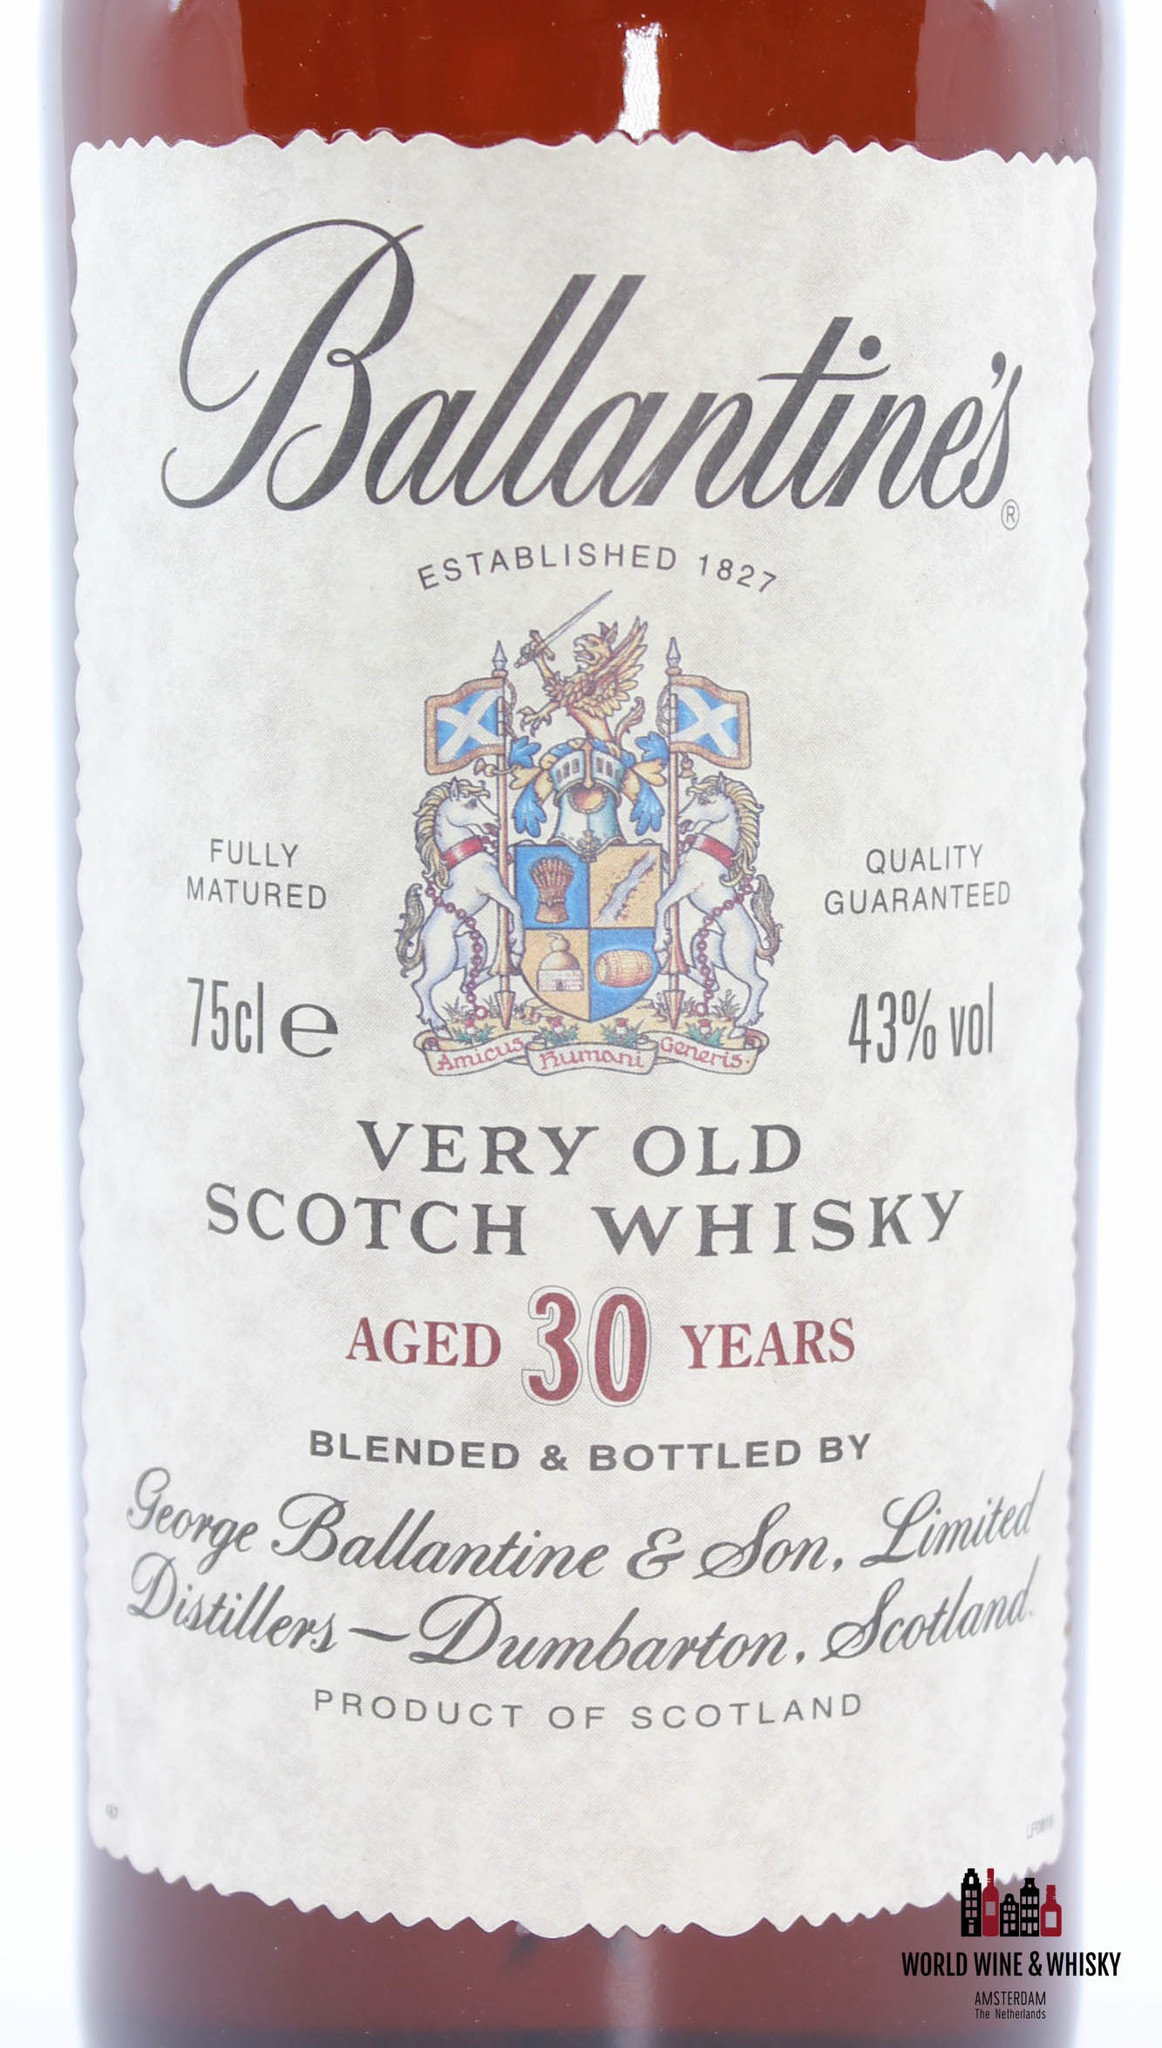 Ballantine's Ballantine's 30 Years Old - Very Old Scotch Whisky 43% 750 ml (90's bottling)